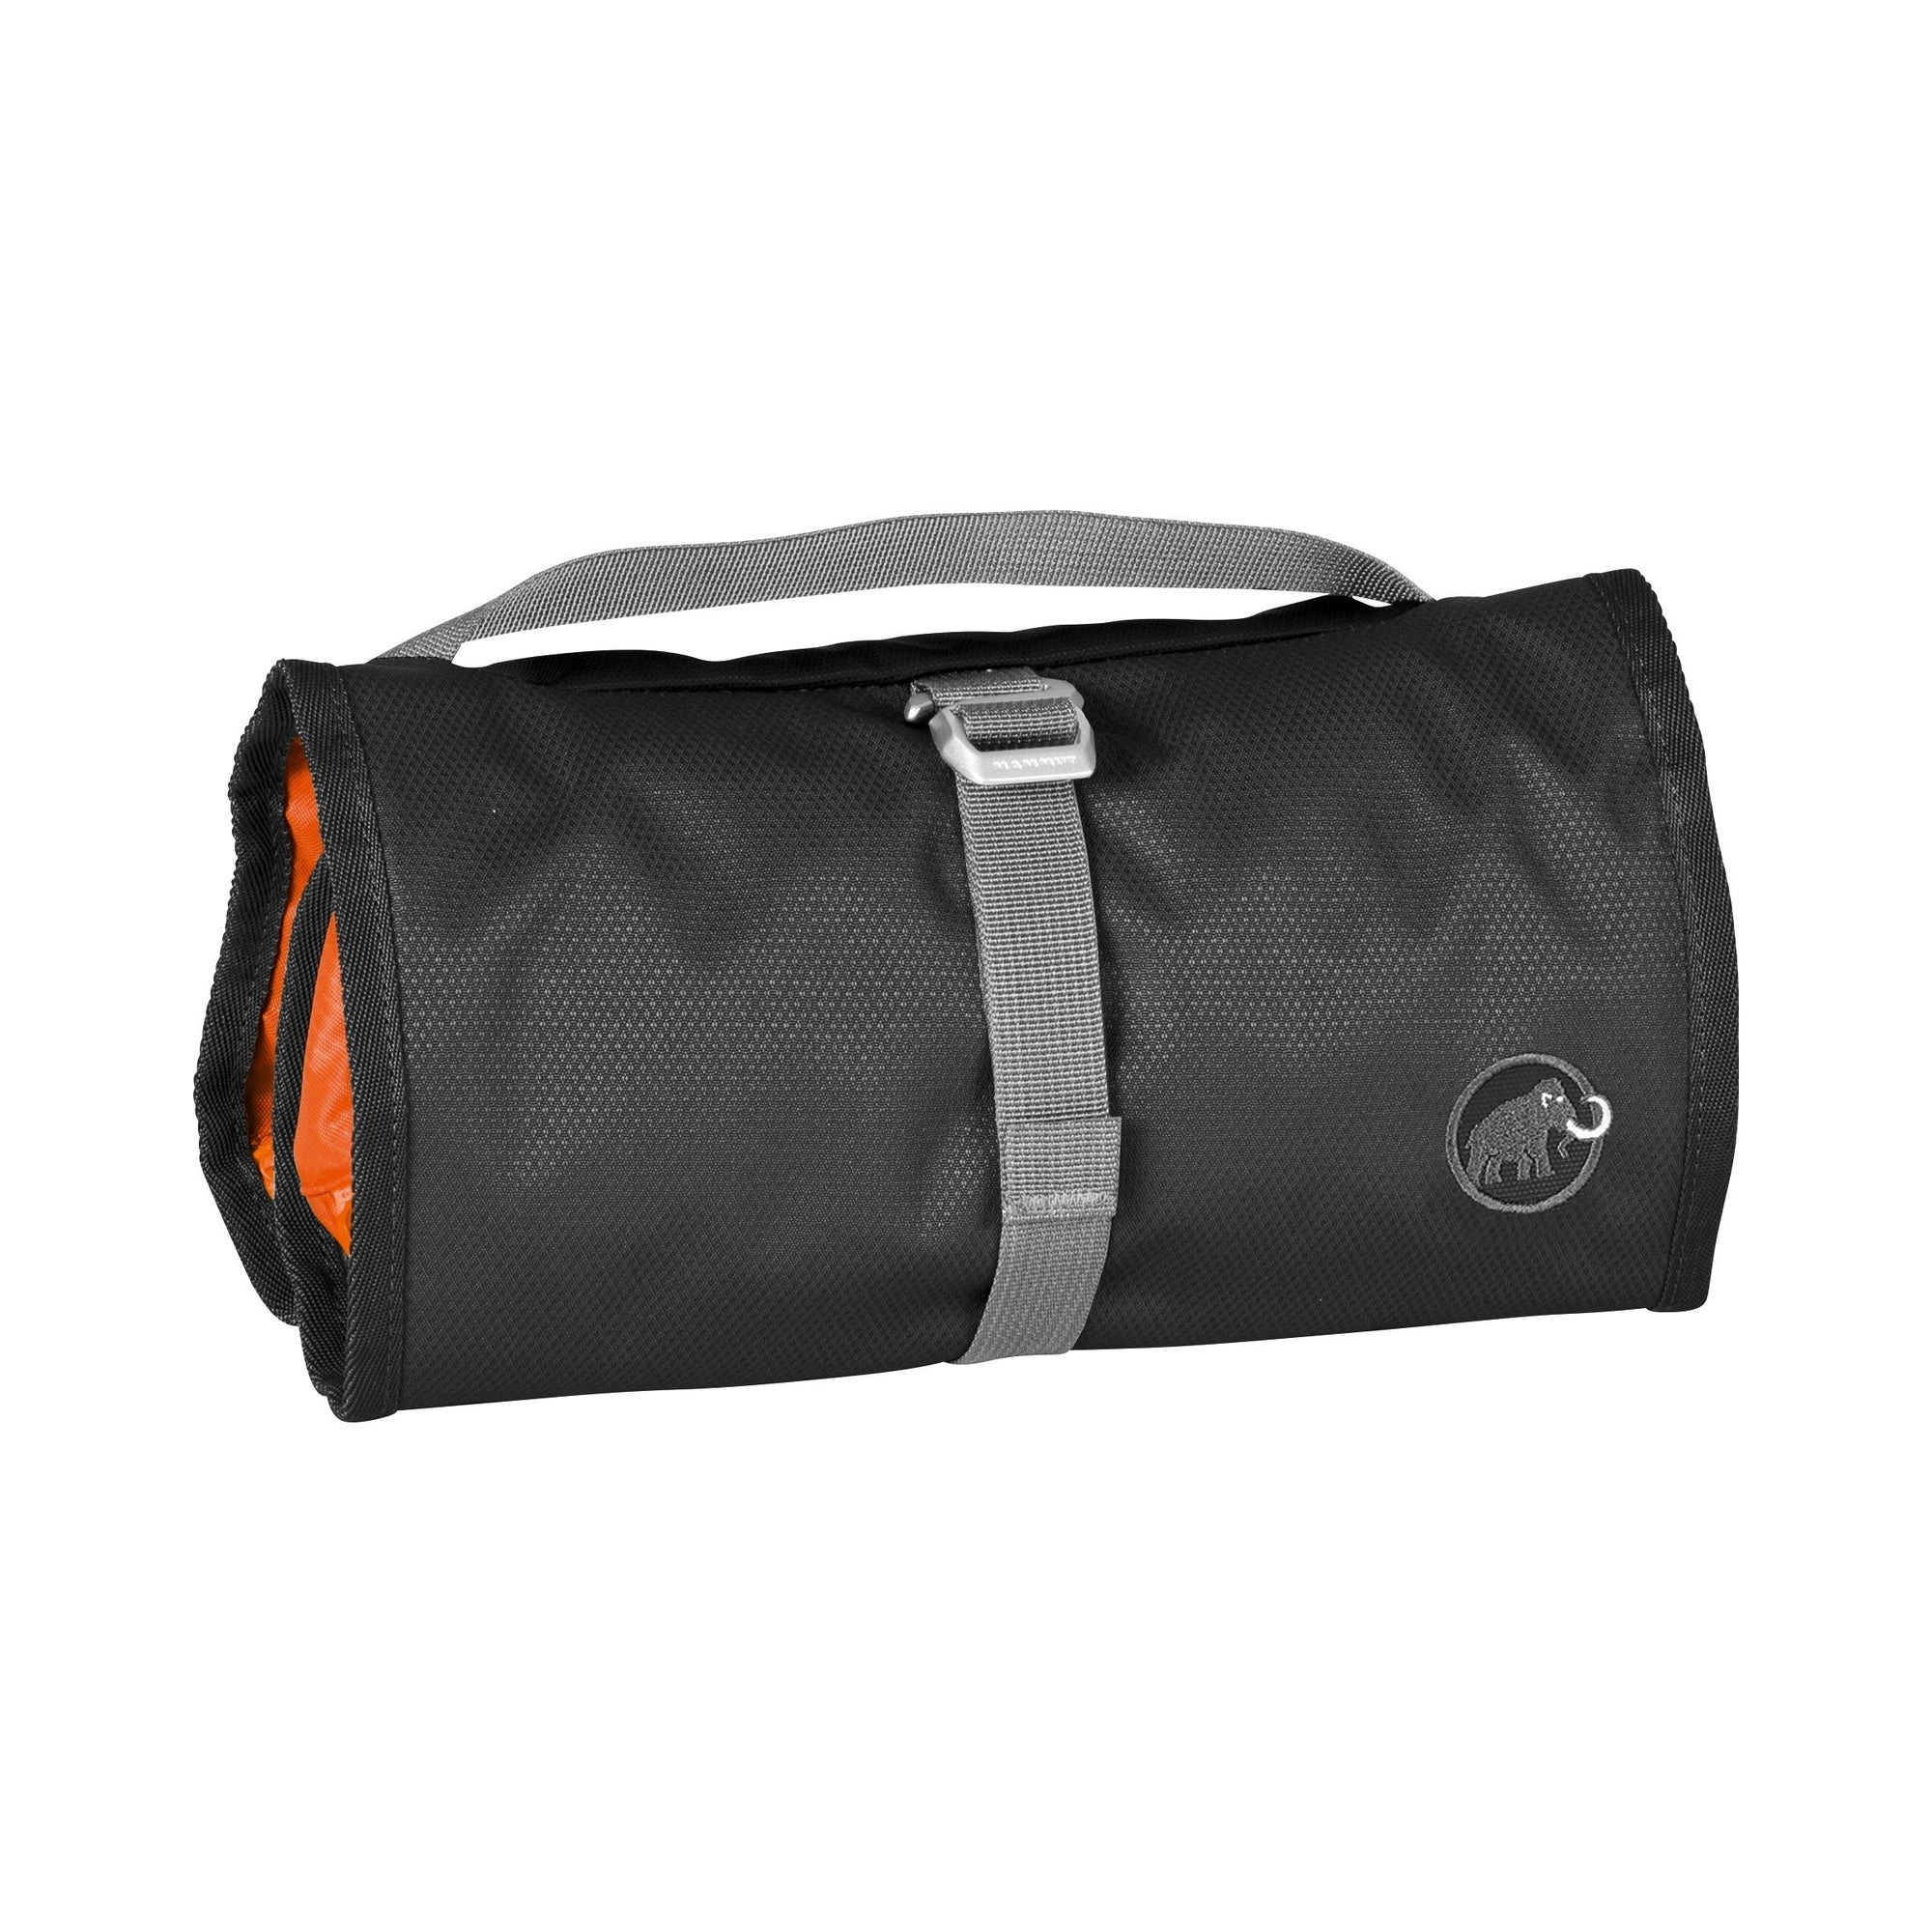 Mammut Washbag Travel (Large)